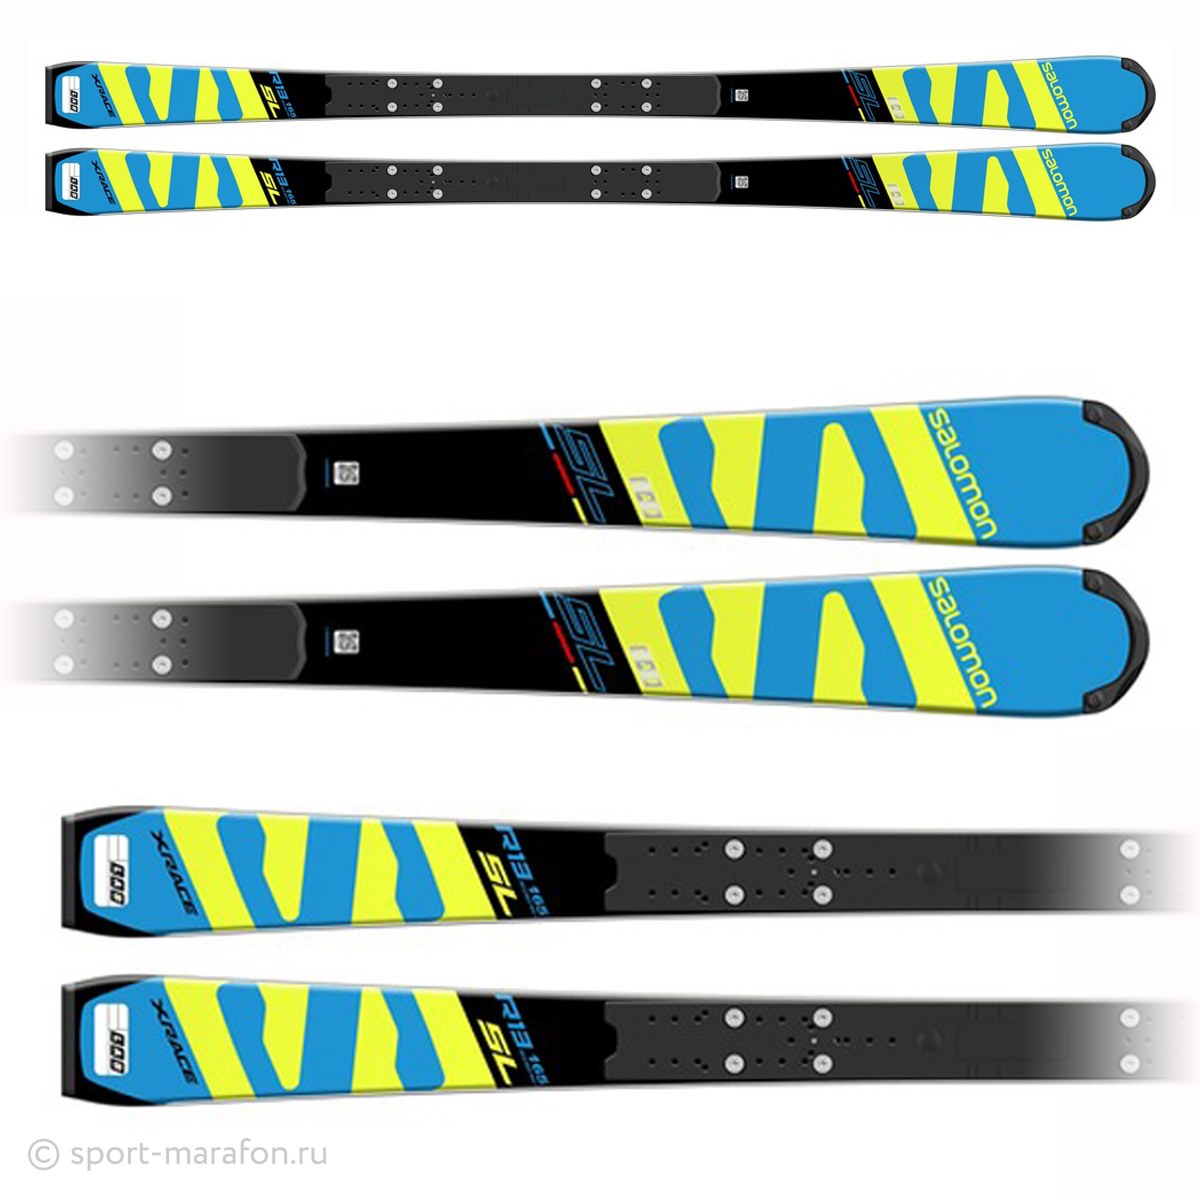 Горные лыжи Salomon Skis I X-Race Lab Sl+ Race Platexx - Фото 2 большая